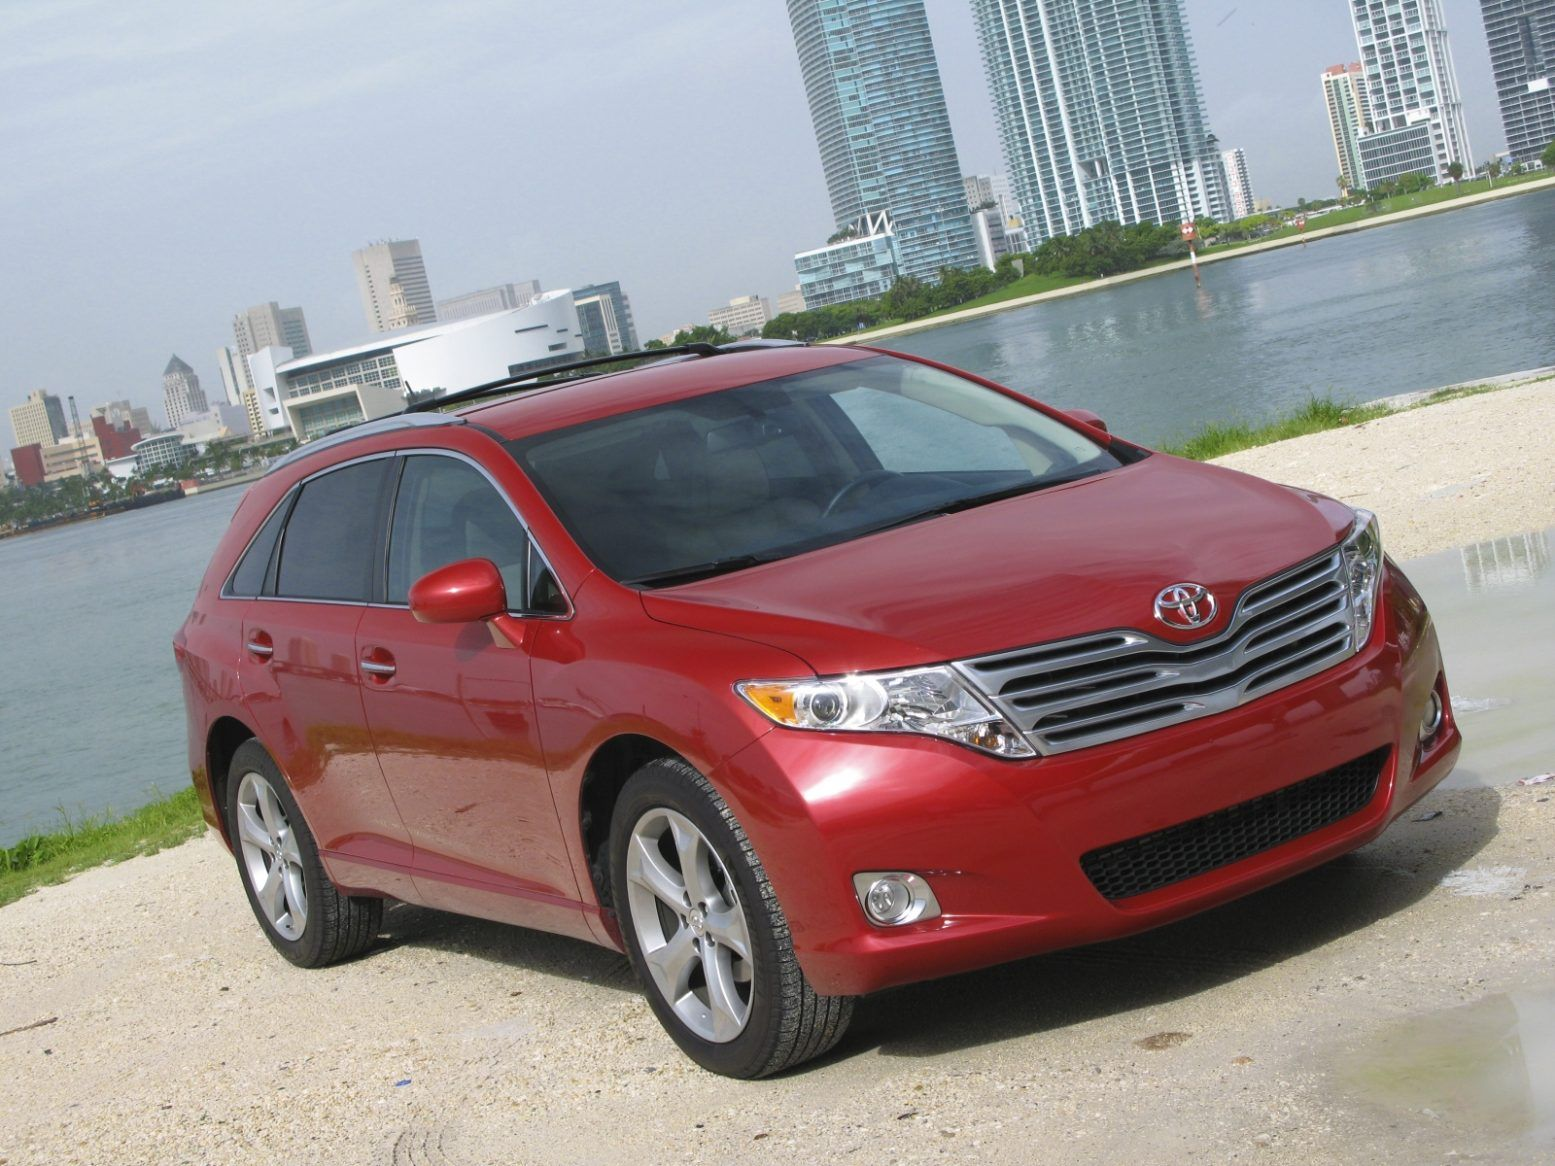 2020 toyota venza - review, release date, engine, price